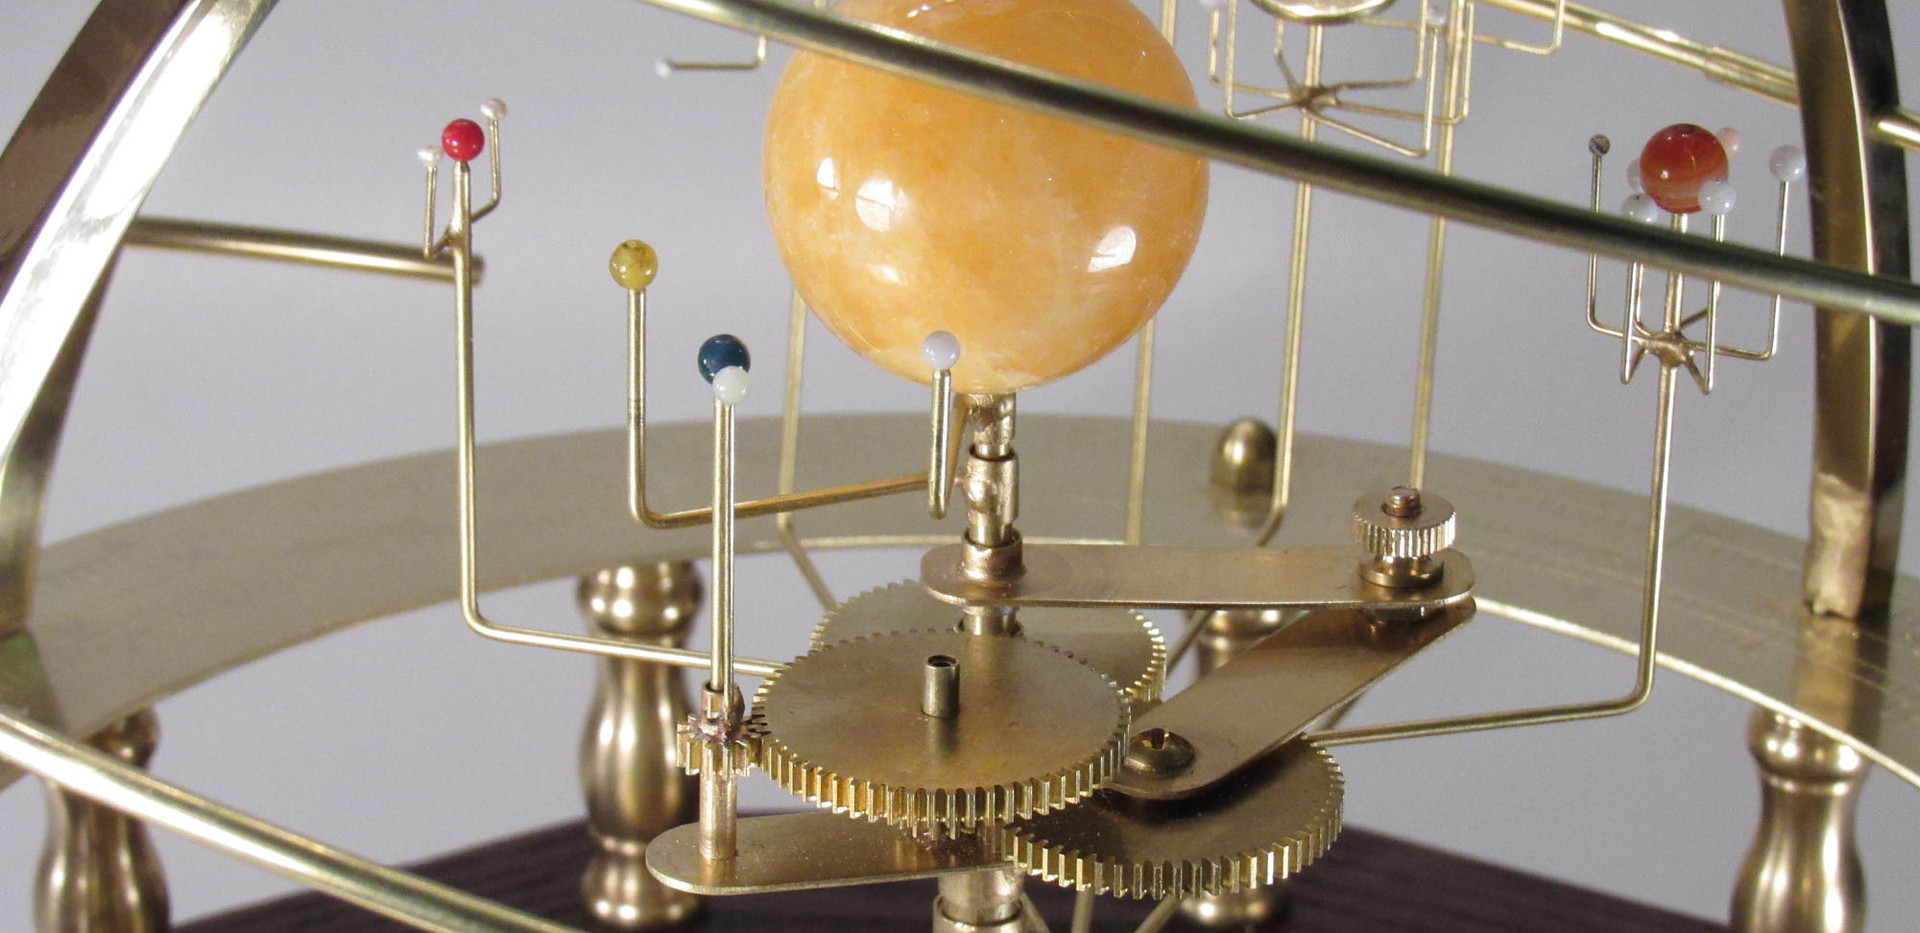 armillary and planets 052018.jpg